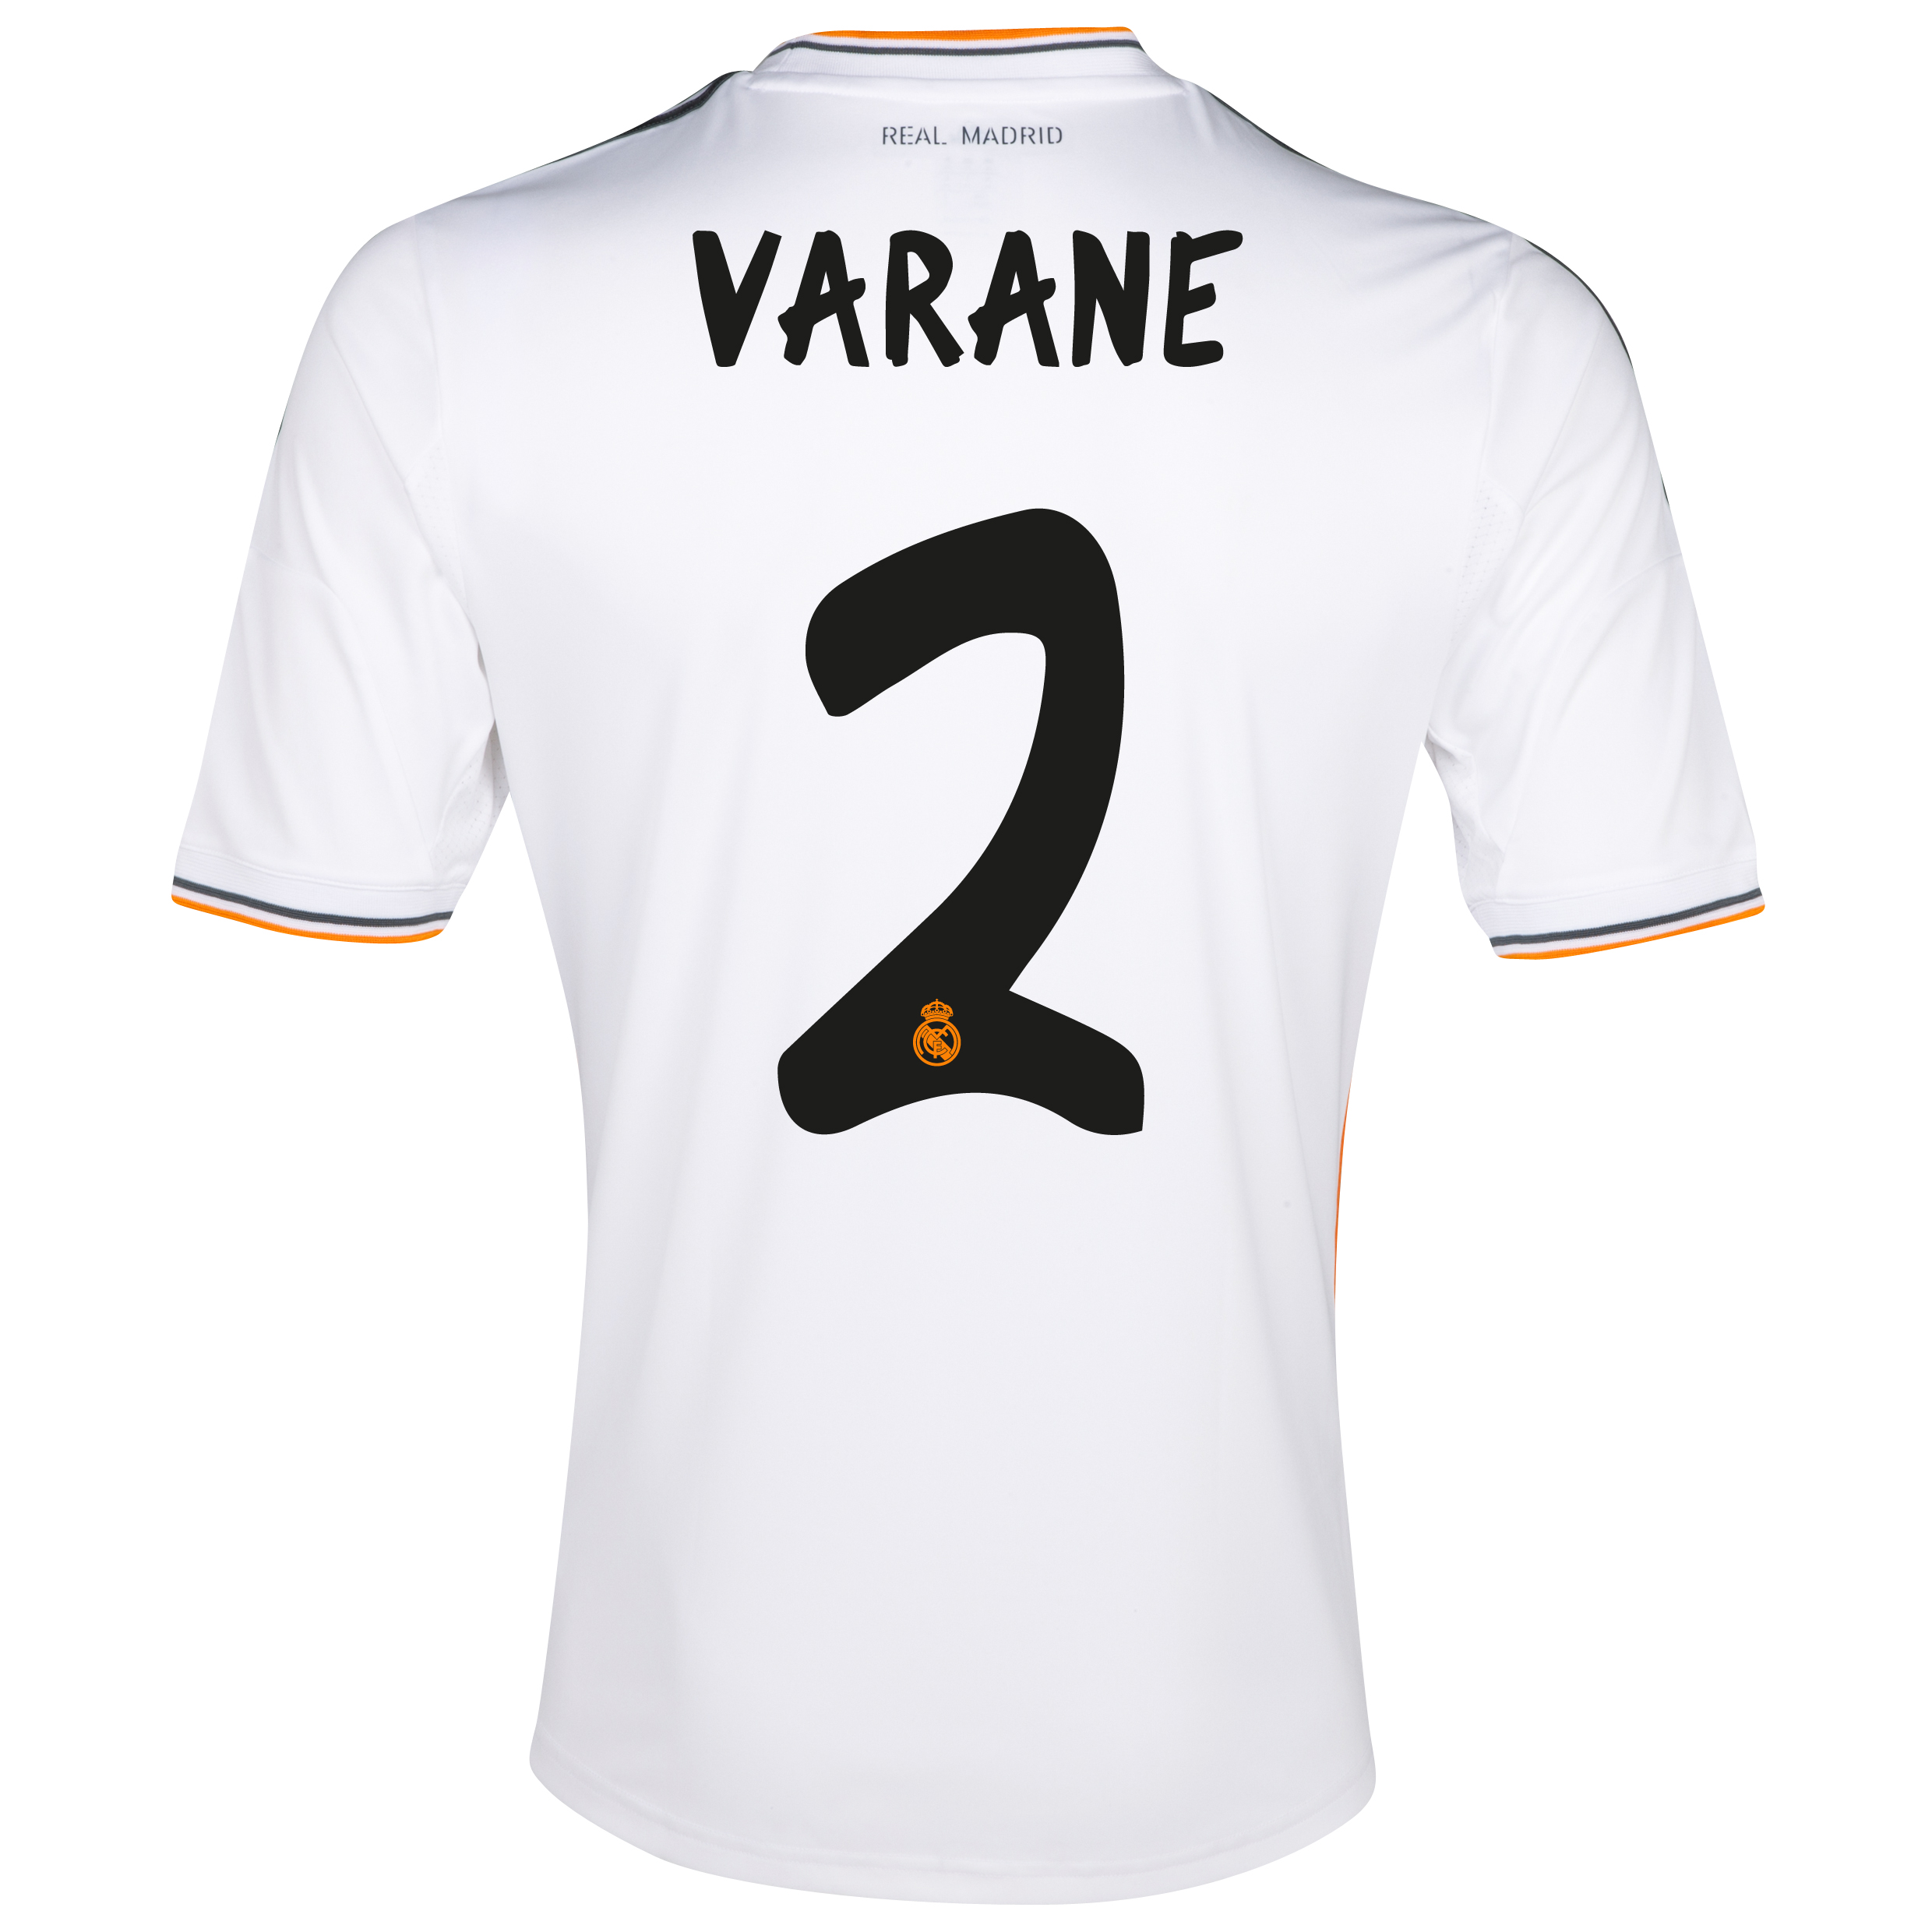 Real Madrid Home Shirt 2013/14 with Varane 2 printing